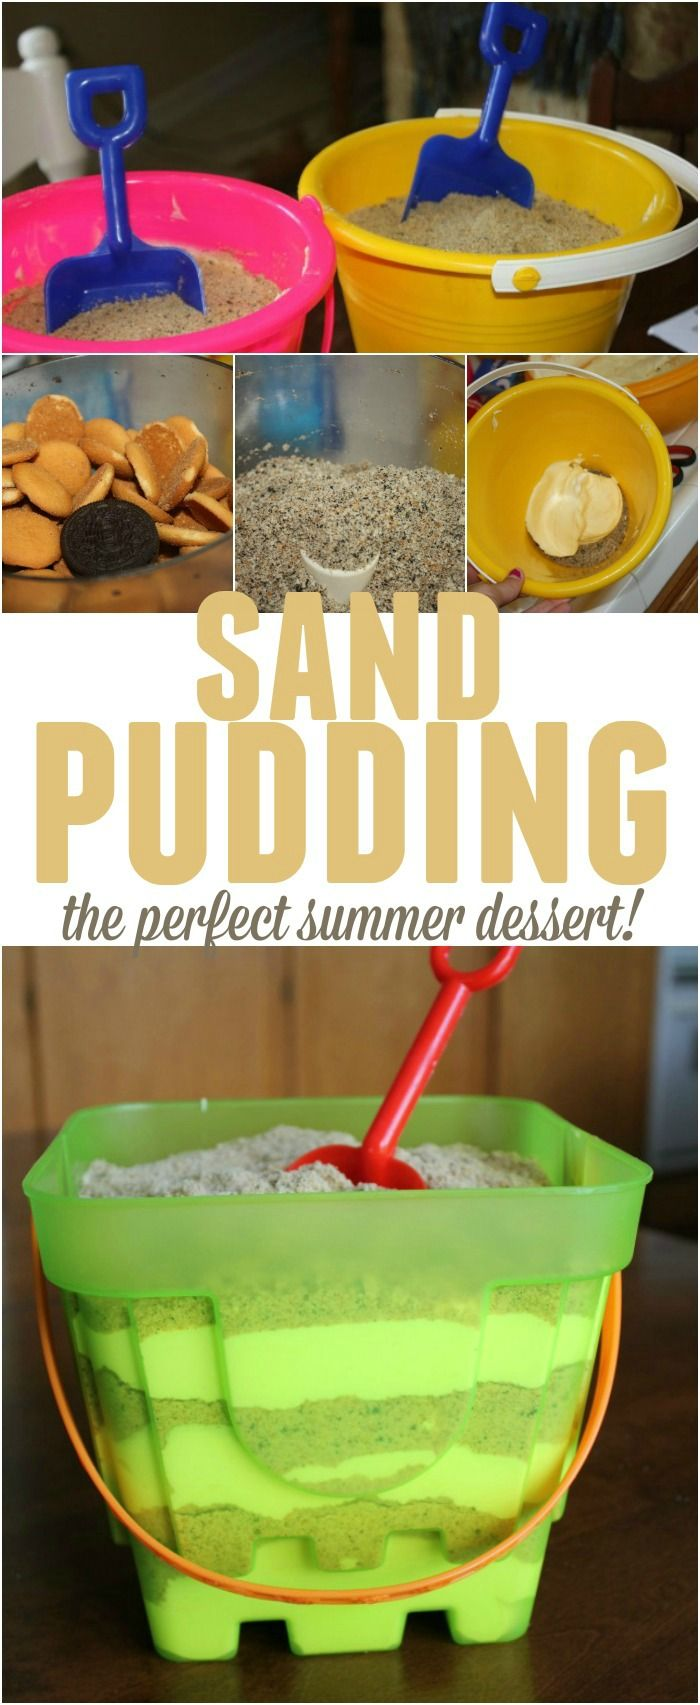 Summer sand pudding - super easy delicious dessert that's fun & everyone will love!